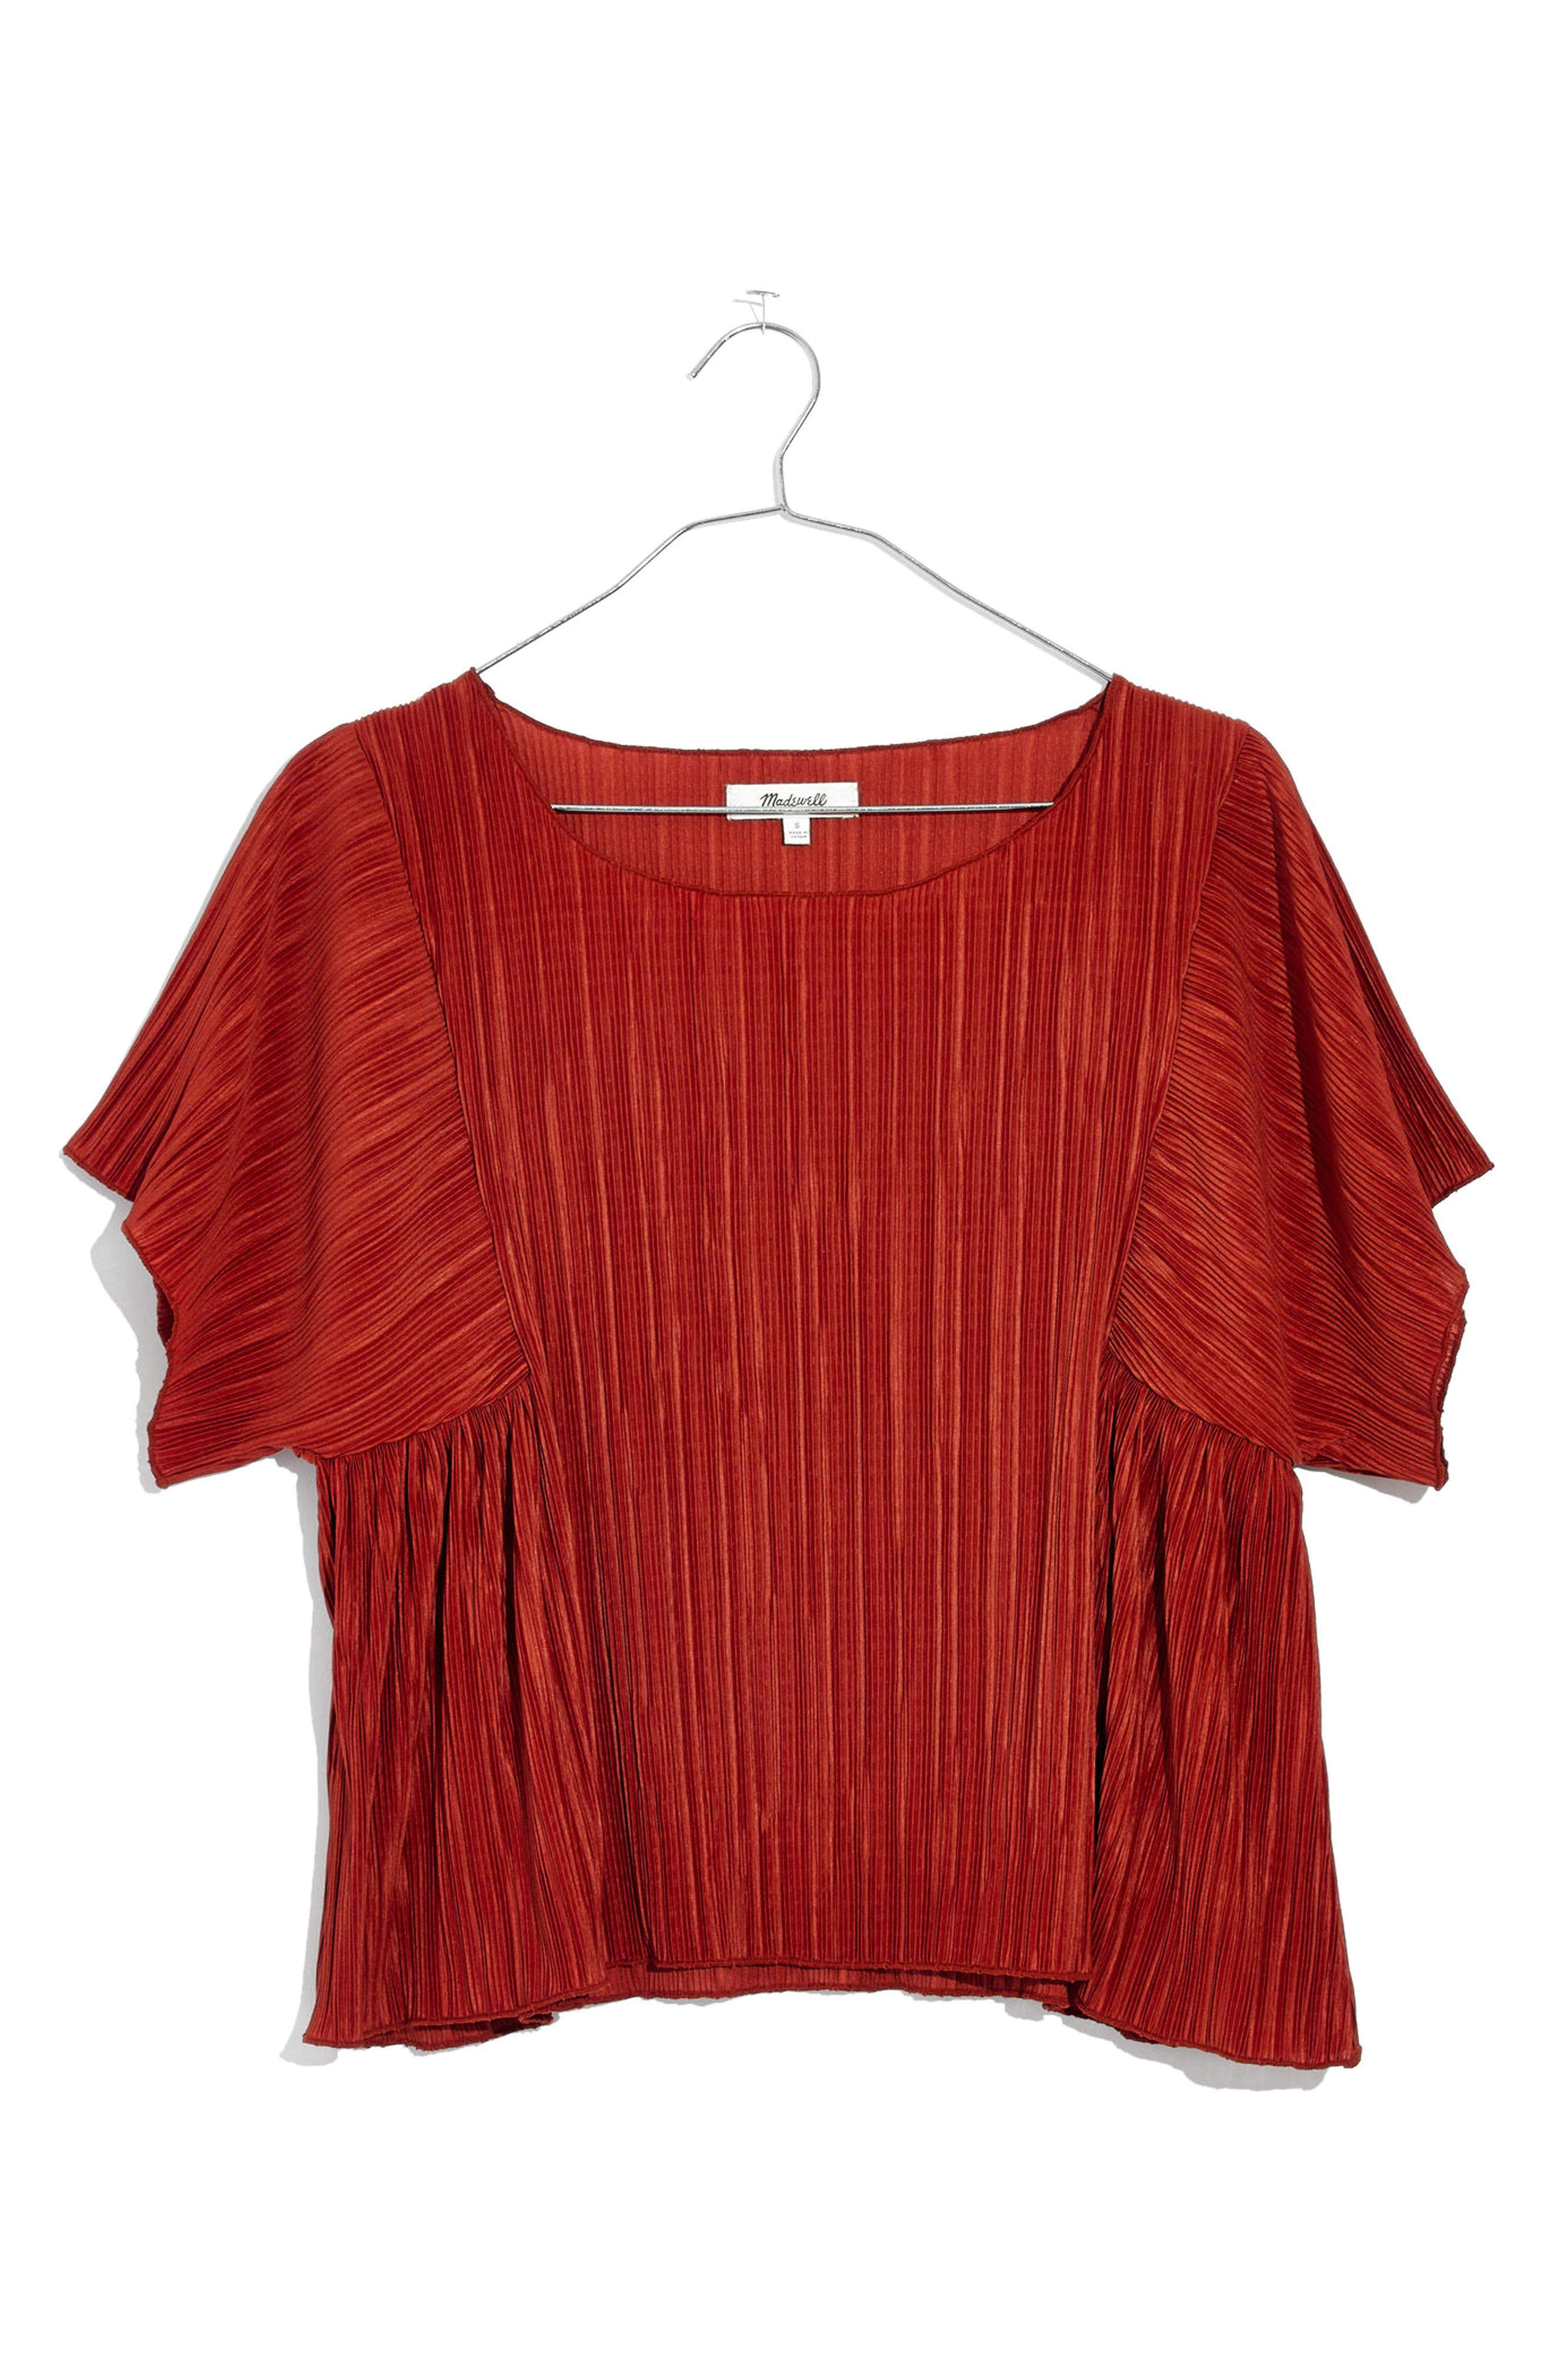 Micropleat Top,                             Alternate thumbnail 7, color,                             Rusty Torch